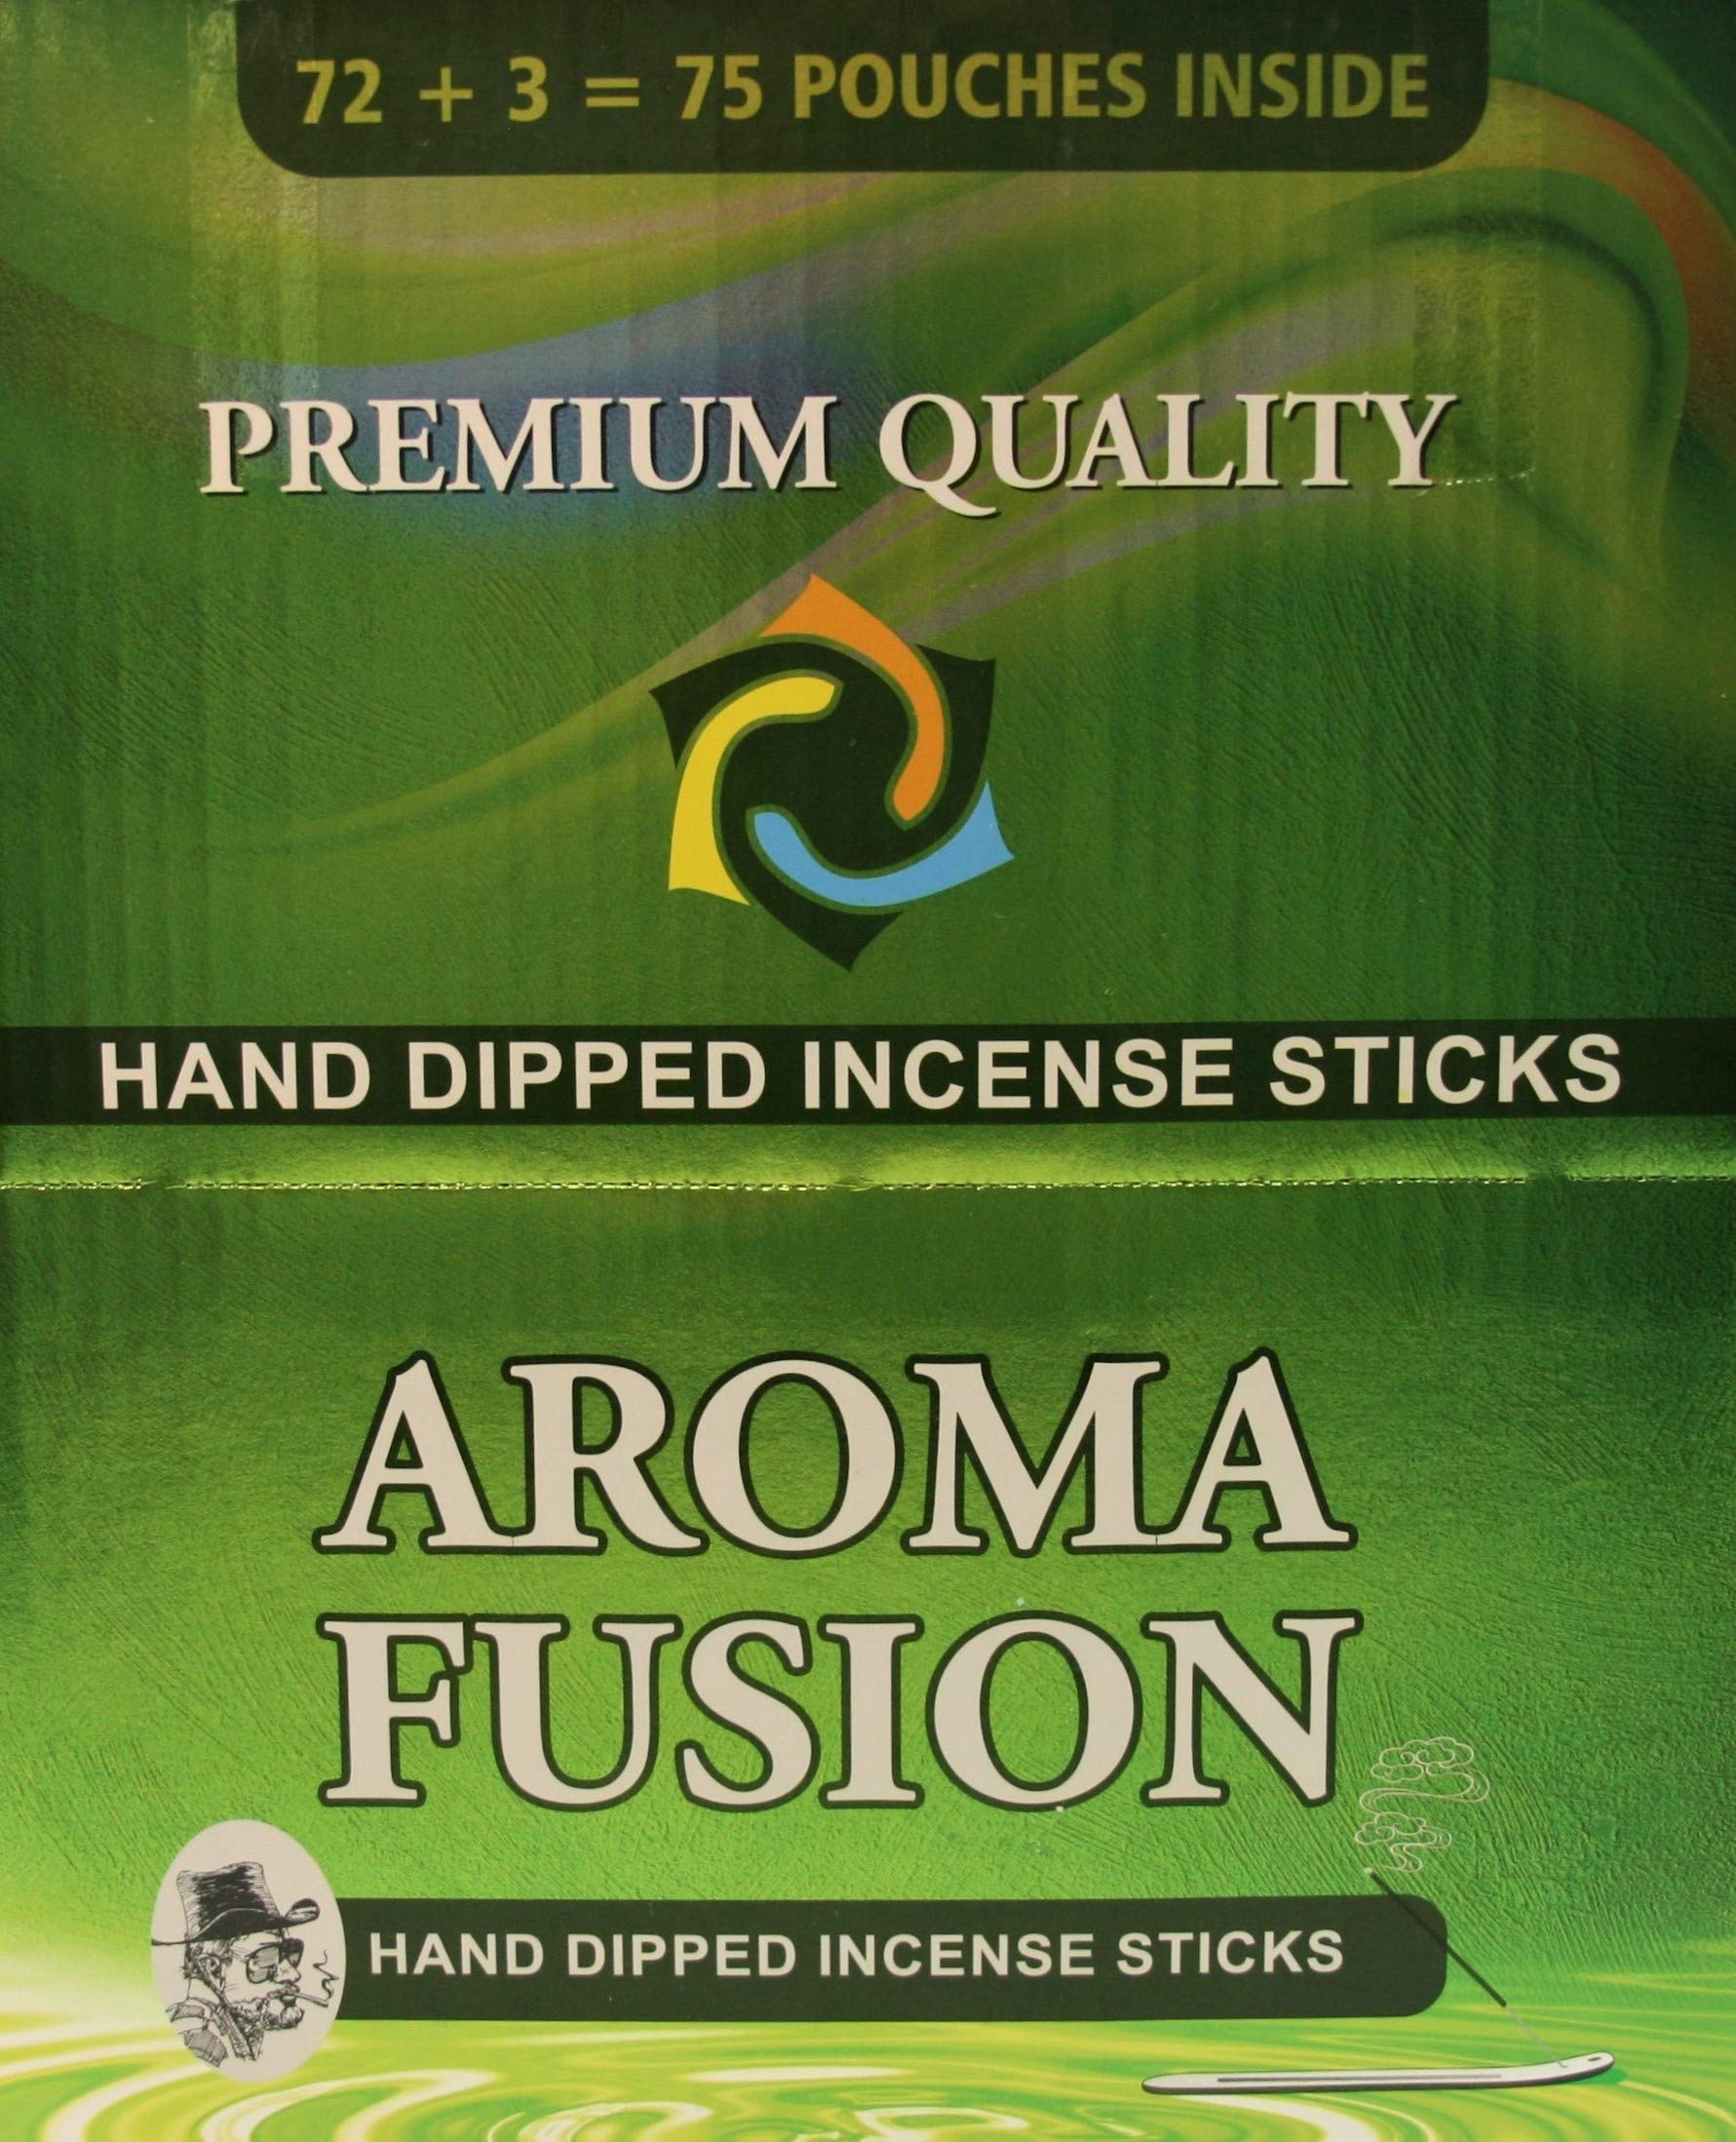 Aroma Fusion Premium Quality Hand-Dipped Incense Sticks | 75 Variety Pouches | 1,125 Total Sticks | 20 Different Scents | Incense Display Case by Aroma Fusion